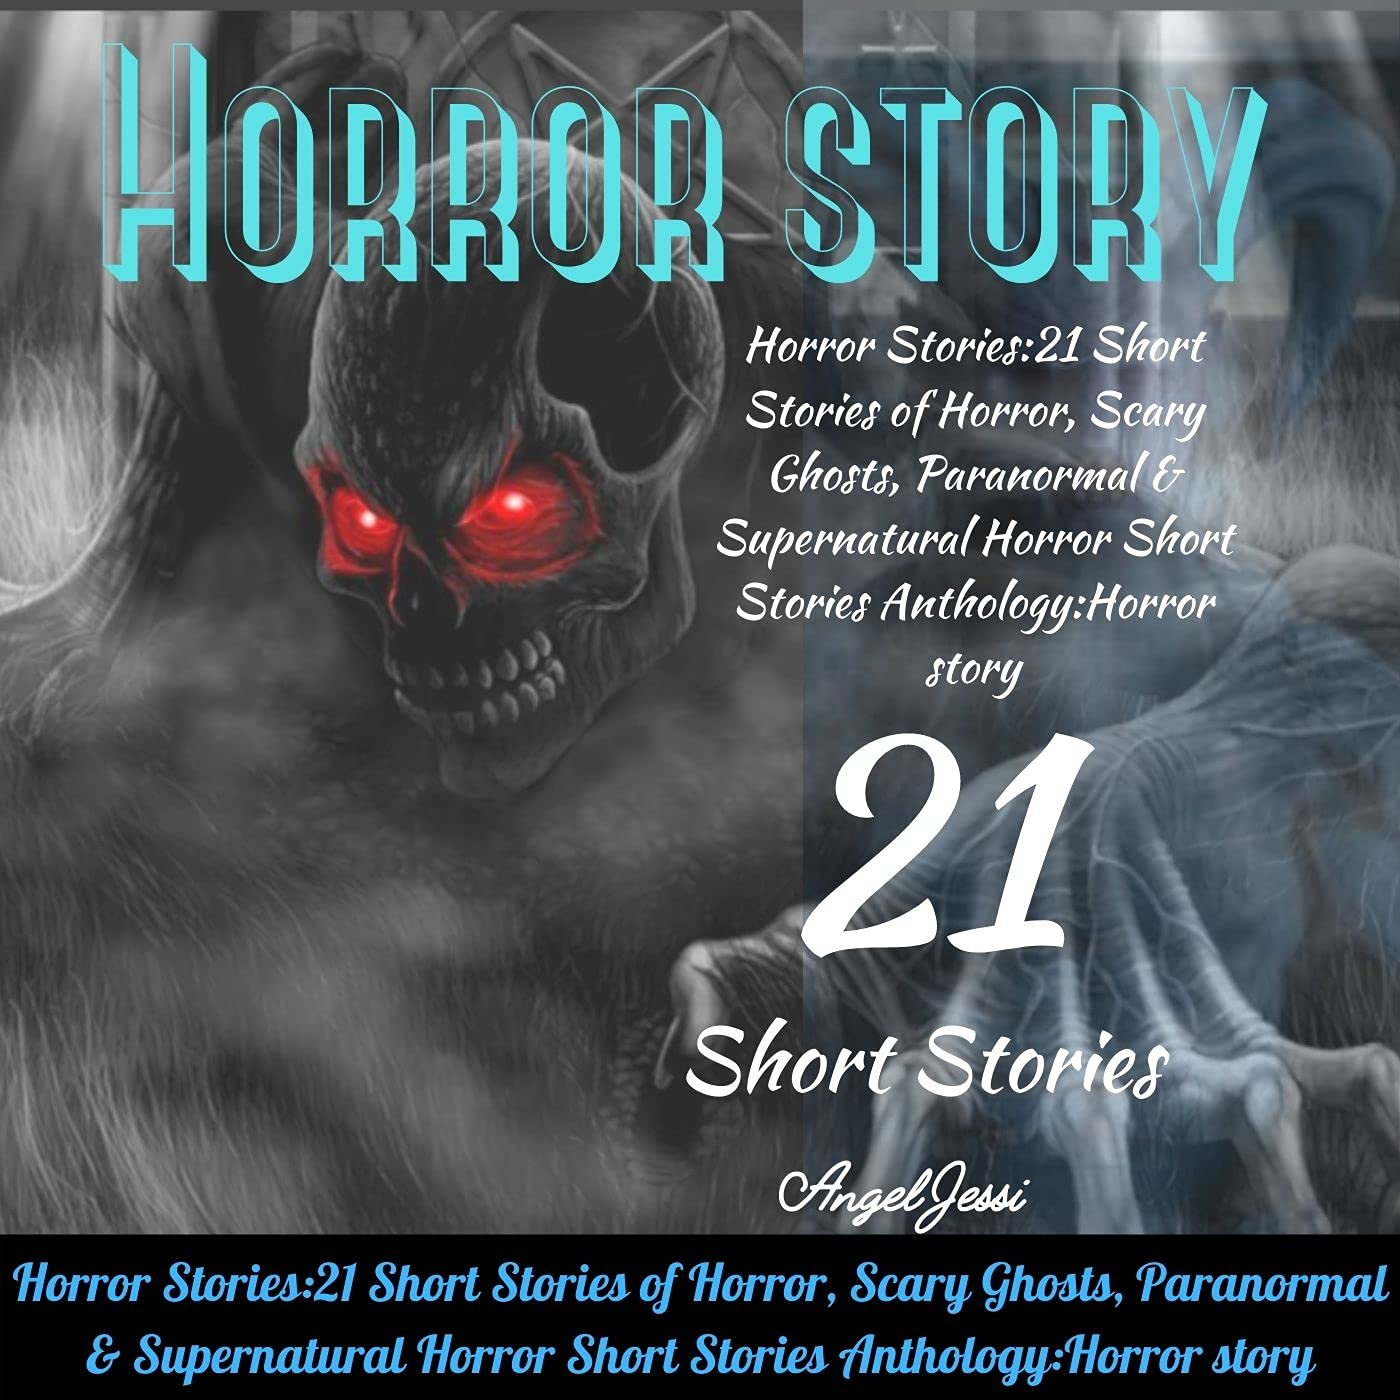 Horror Stories: 21 Short Stories of Horror, Scary Ghosts, Paranormal & Supernatural Horror Short Stories Anthology:Horror story;american horror story;horror story candle.